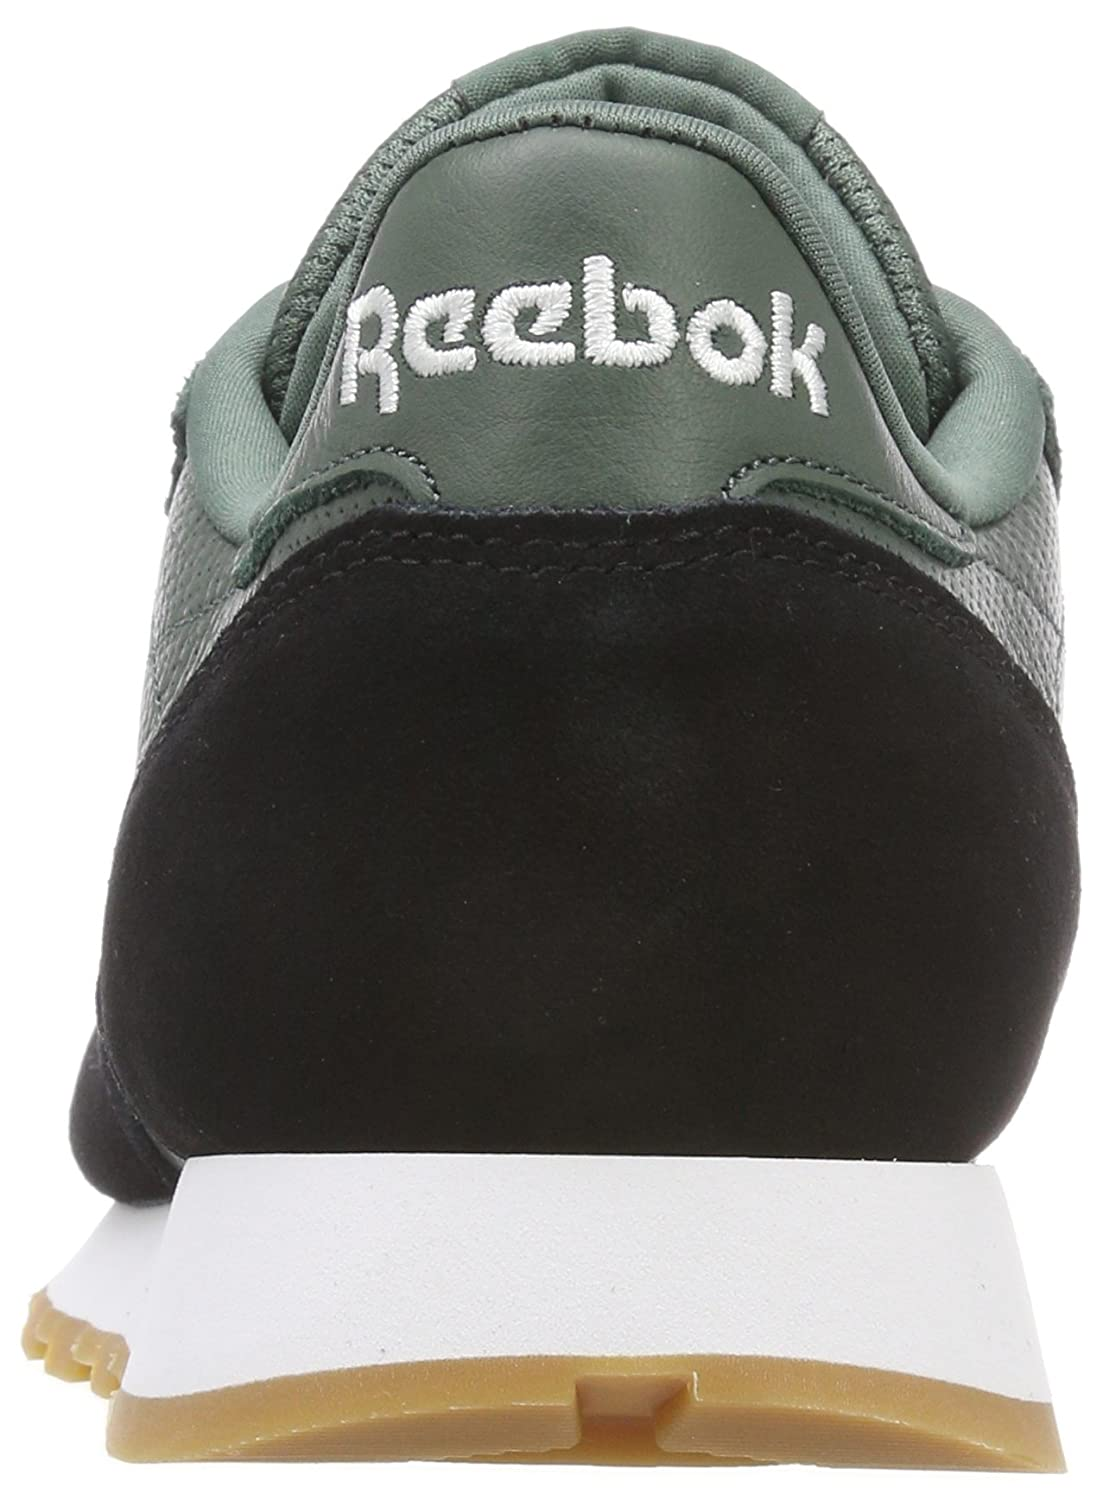 403993a9201 Reebok Men s Classic Leather Gi Trainers  Amazon.co.uk  Shoes   Bags